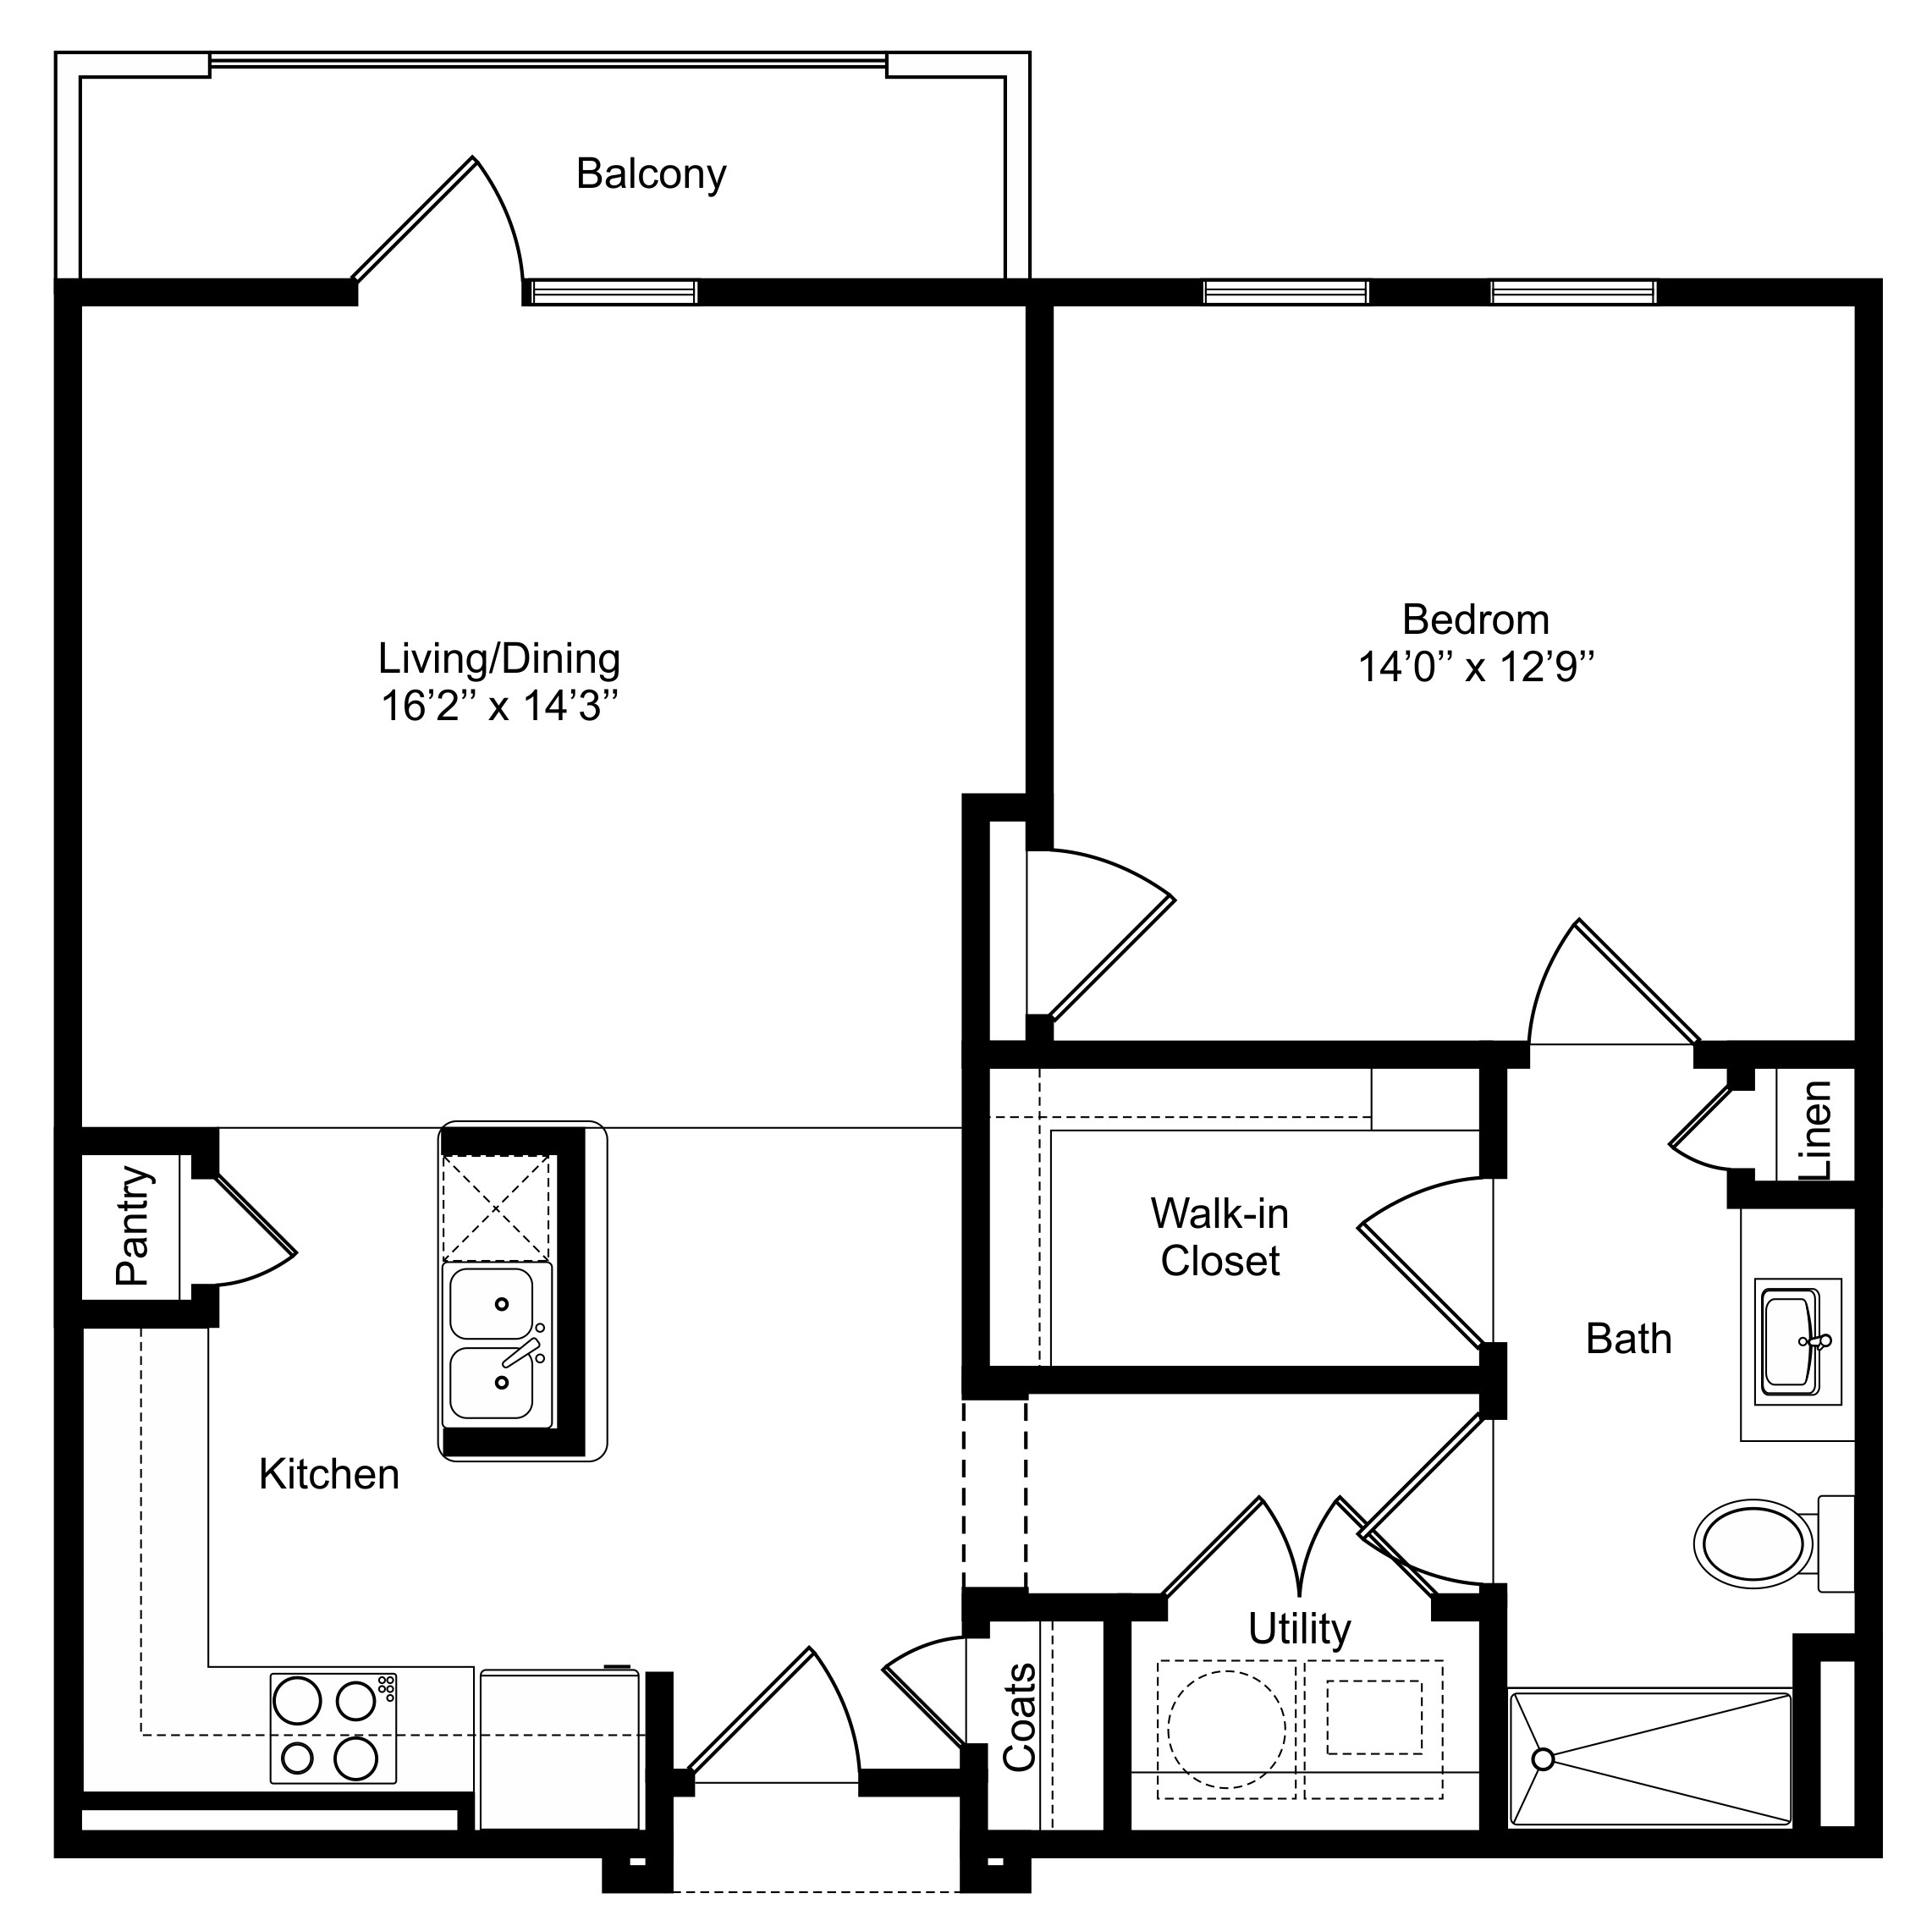 Oxford at Lake View - Floorplan - A3